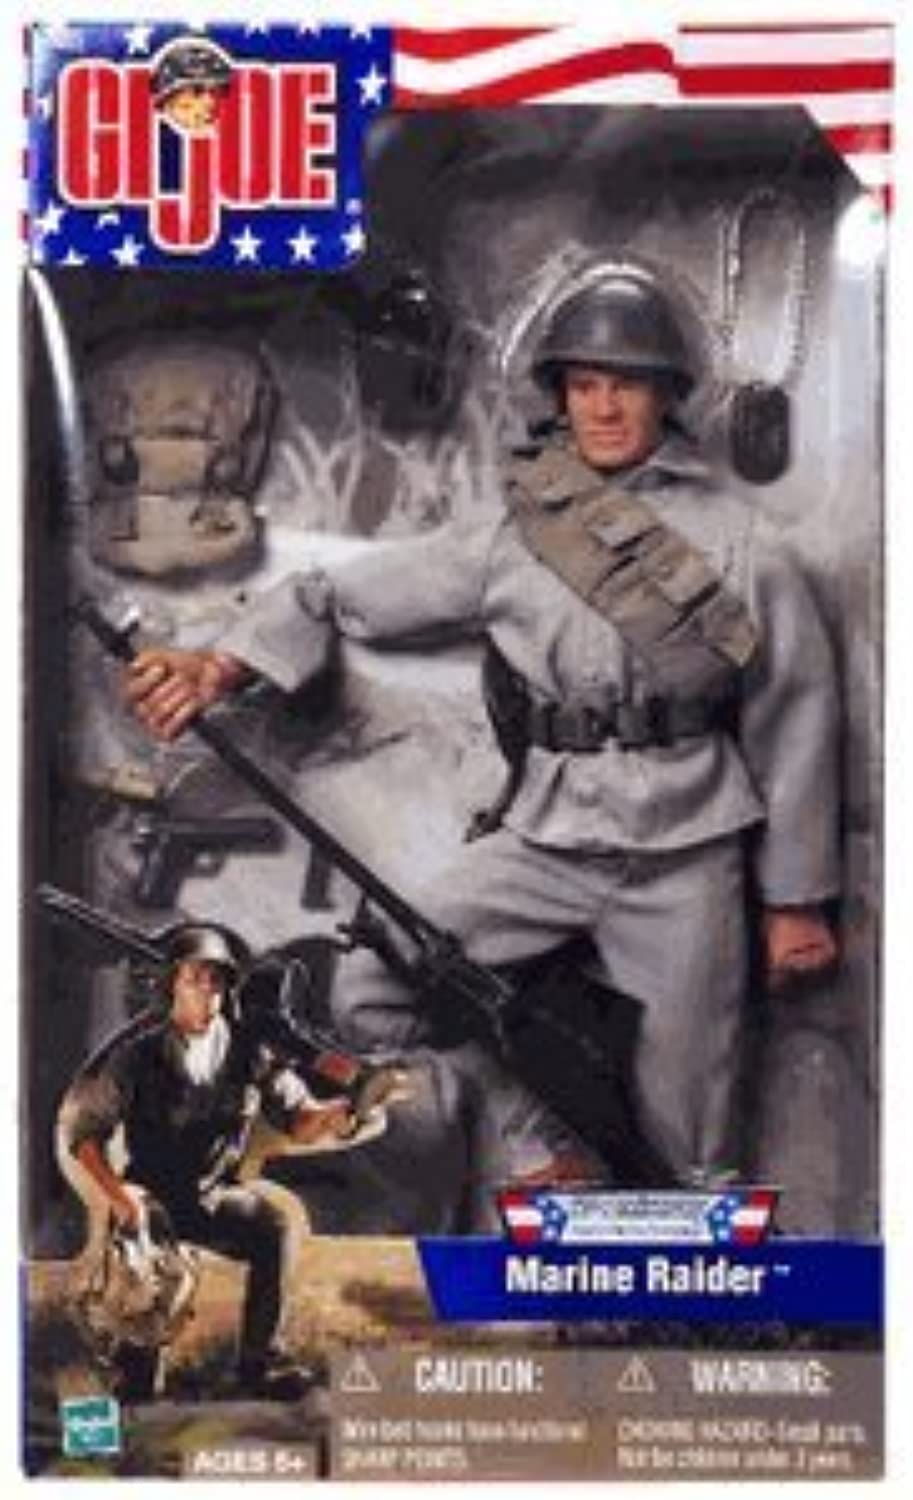 GI Joe Marine Raider 12Action Figure by G. I. Joe